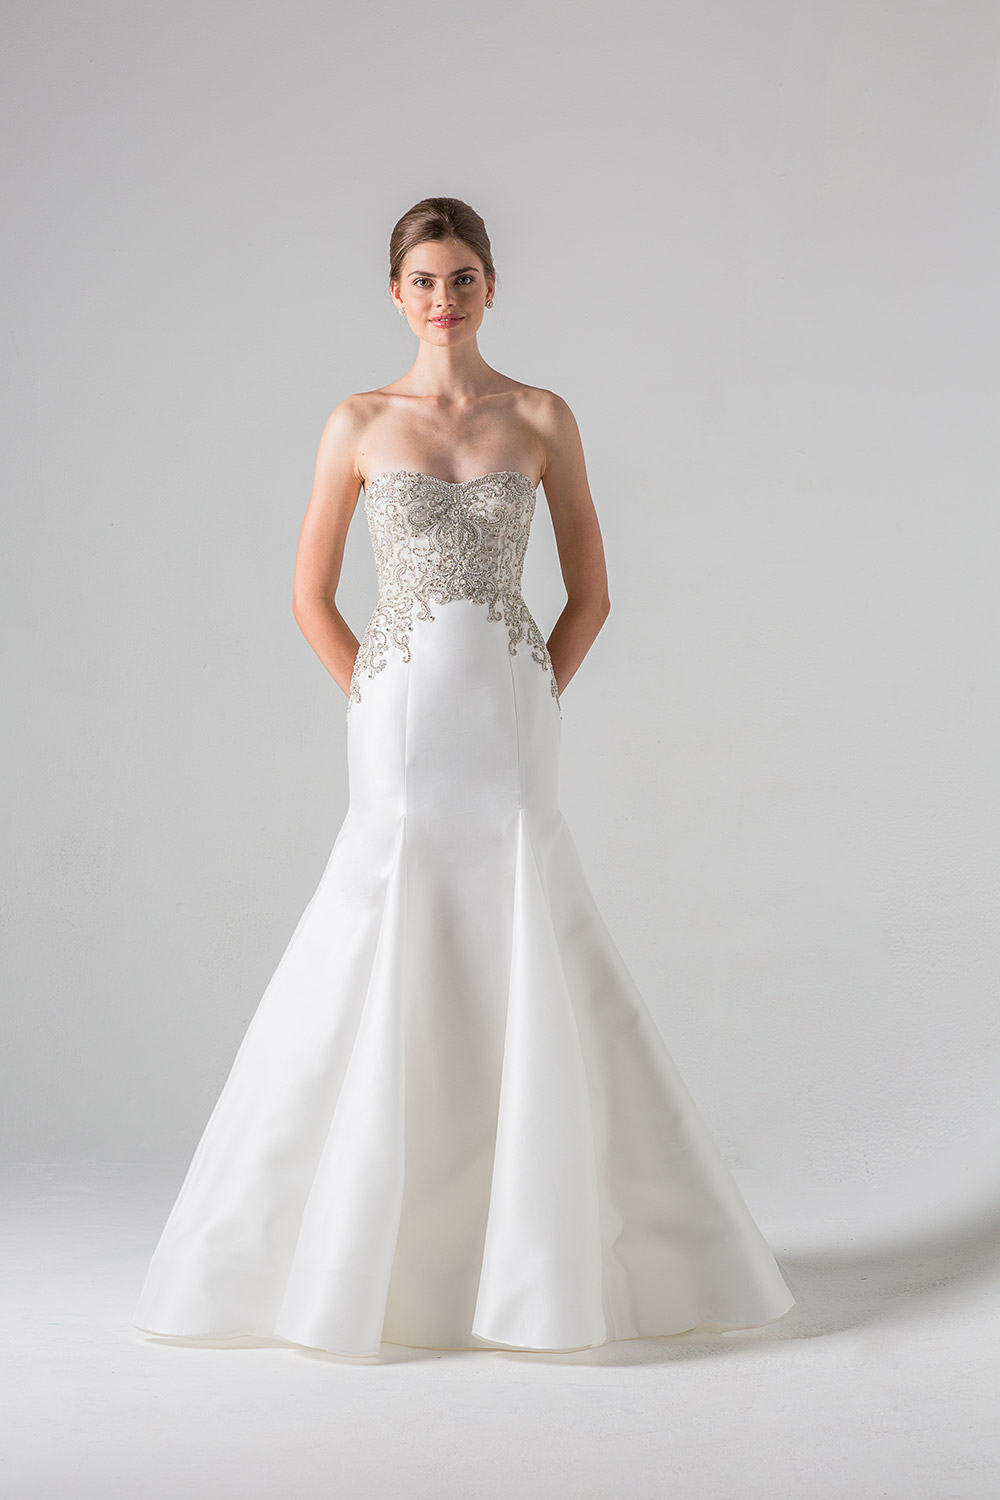 Lourdes - Anne Barge Black Label Fall 2016 Collection. www.theweddingnotebook.com